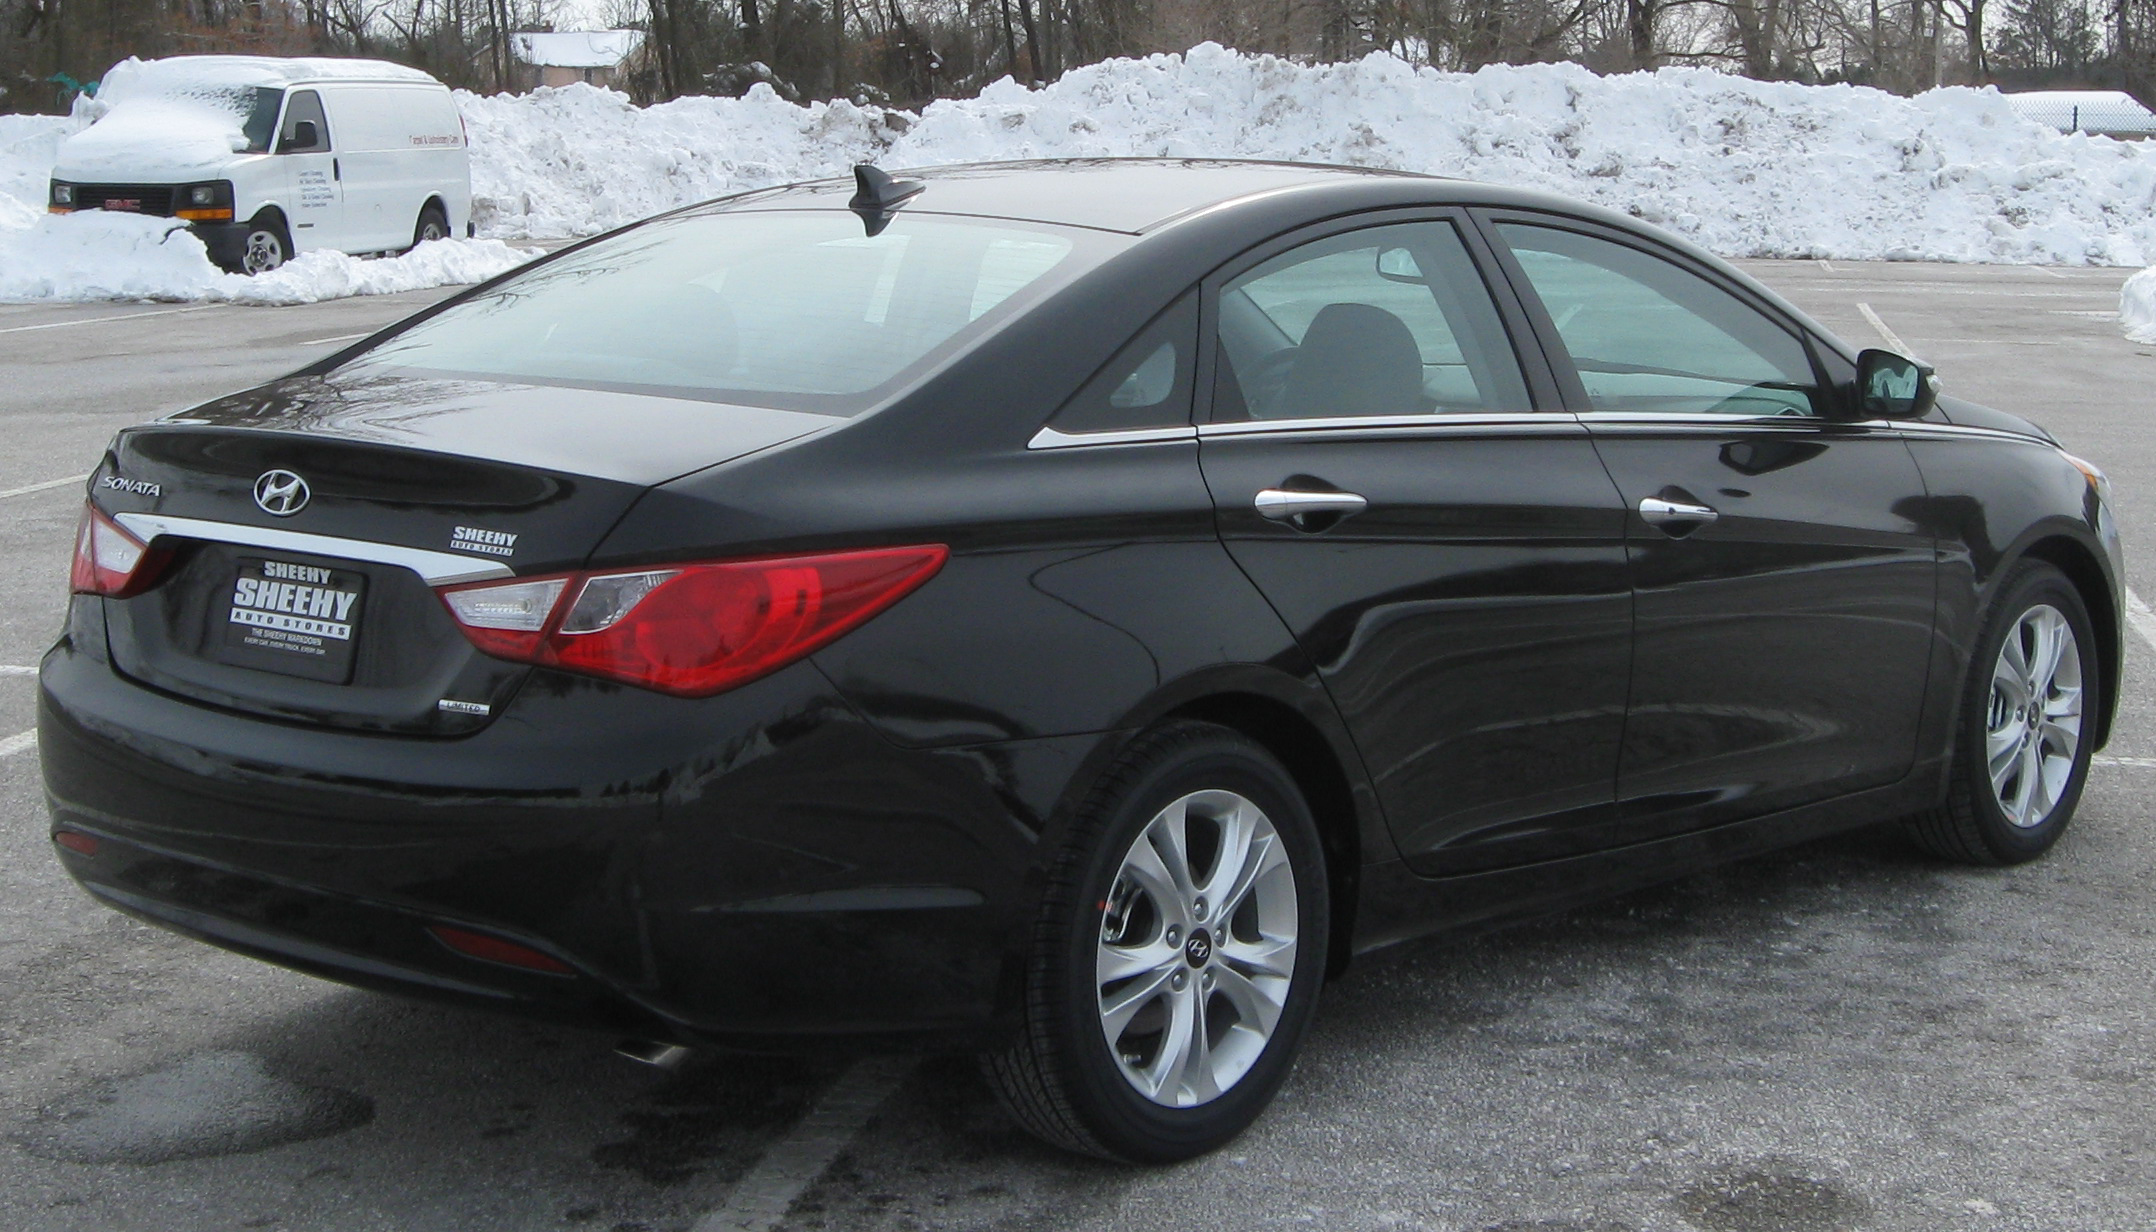 file 2011 hyundai sonata limited rear 02 13 2010 jpg wikimedia rh commons wikimedia org hyundai sonata 2010 manual pdf 2010 hyundai sonata repair manual pdf